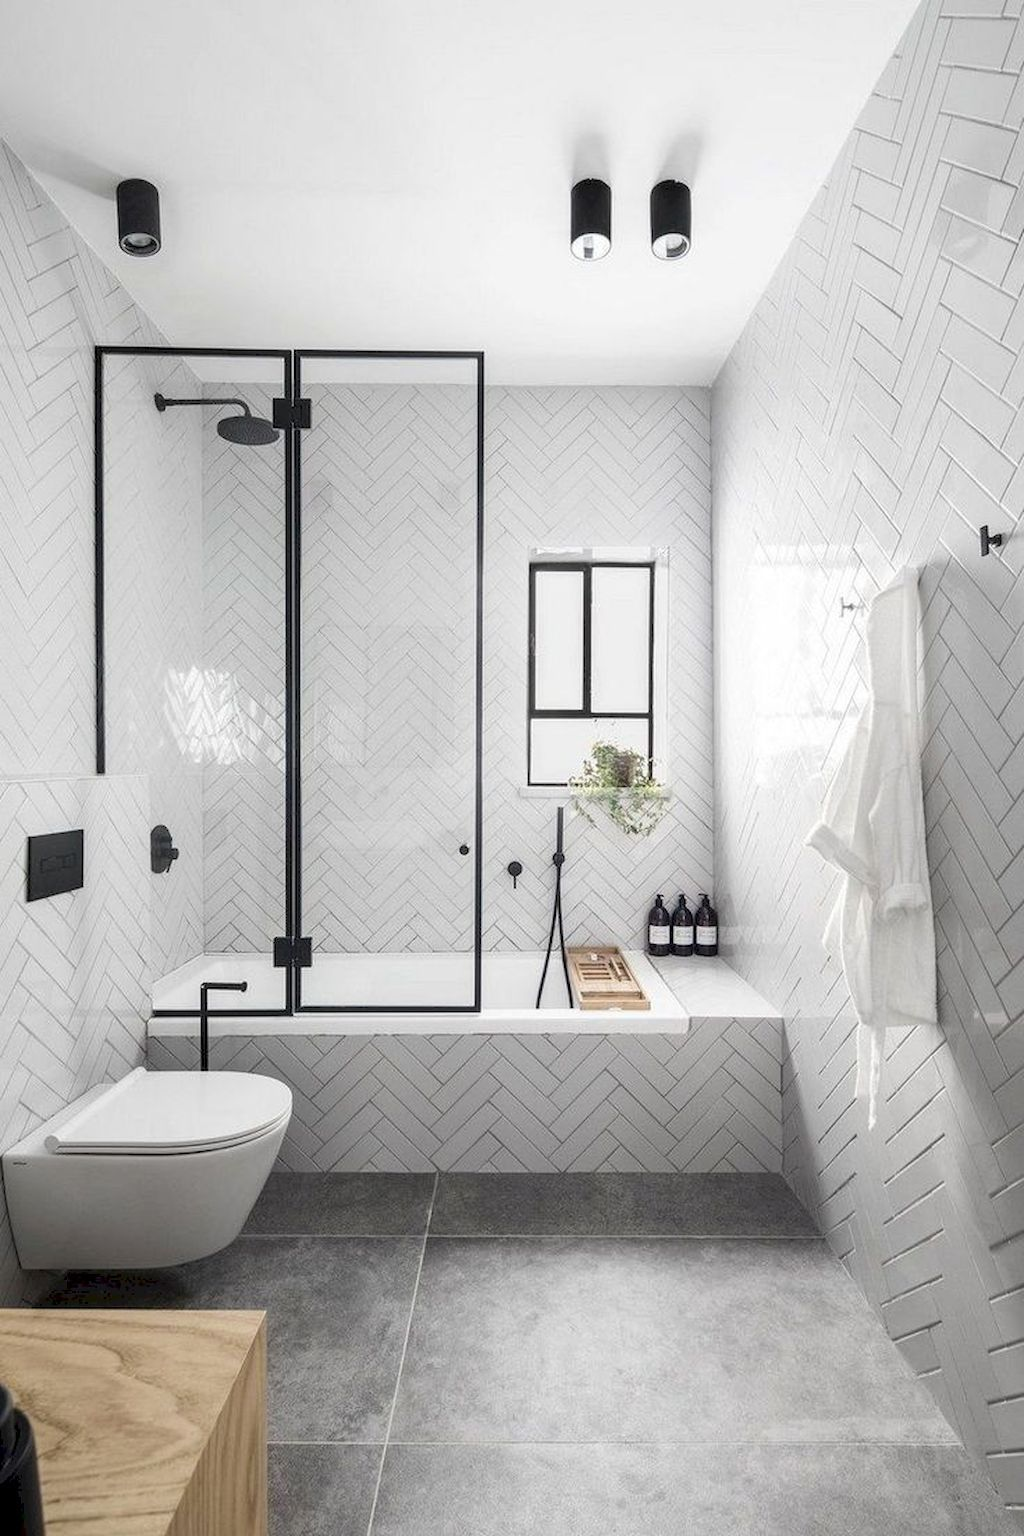 Dazzling modern-bathroom-design , crithome.com/… ,  #modern-bathroom-design